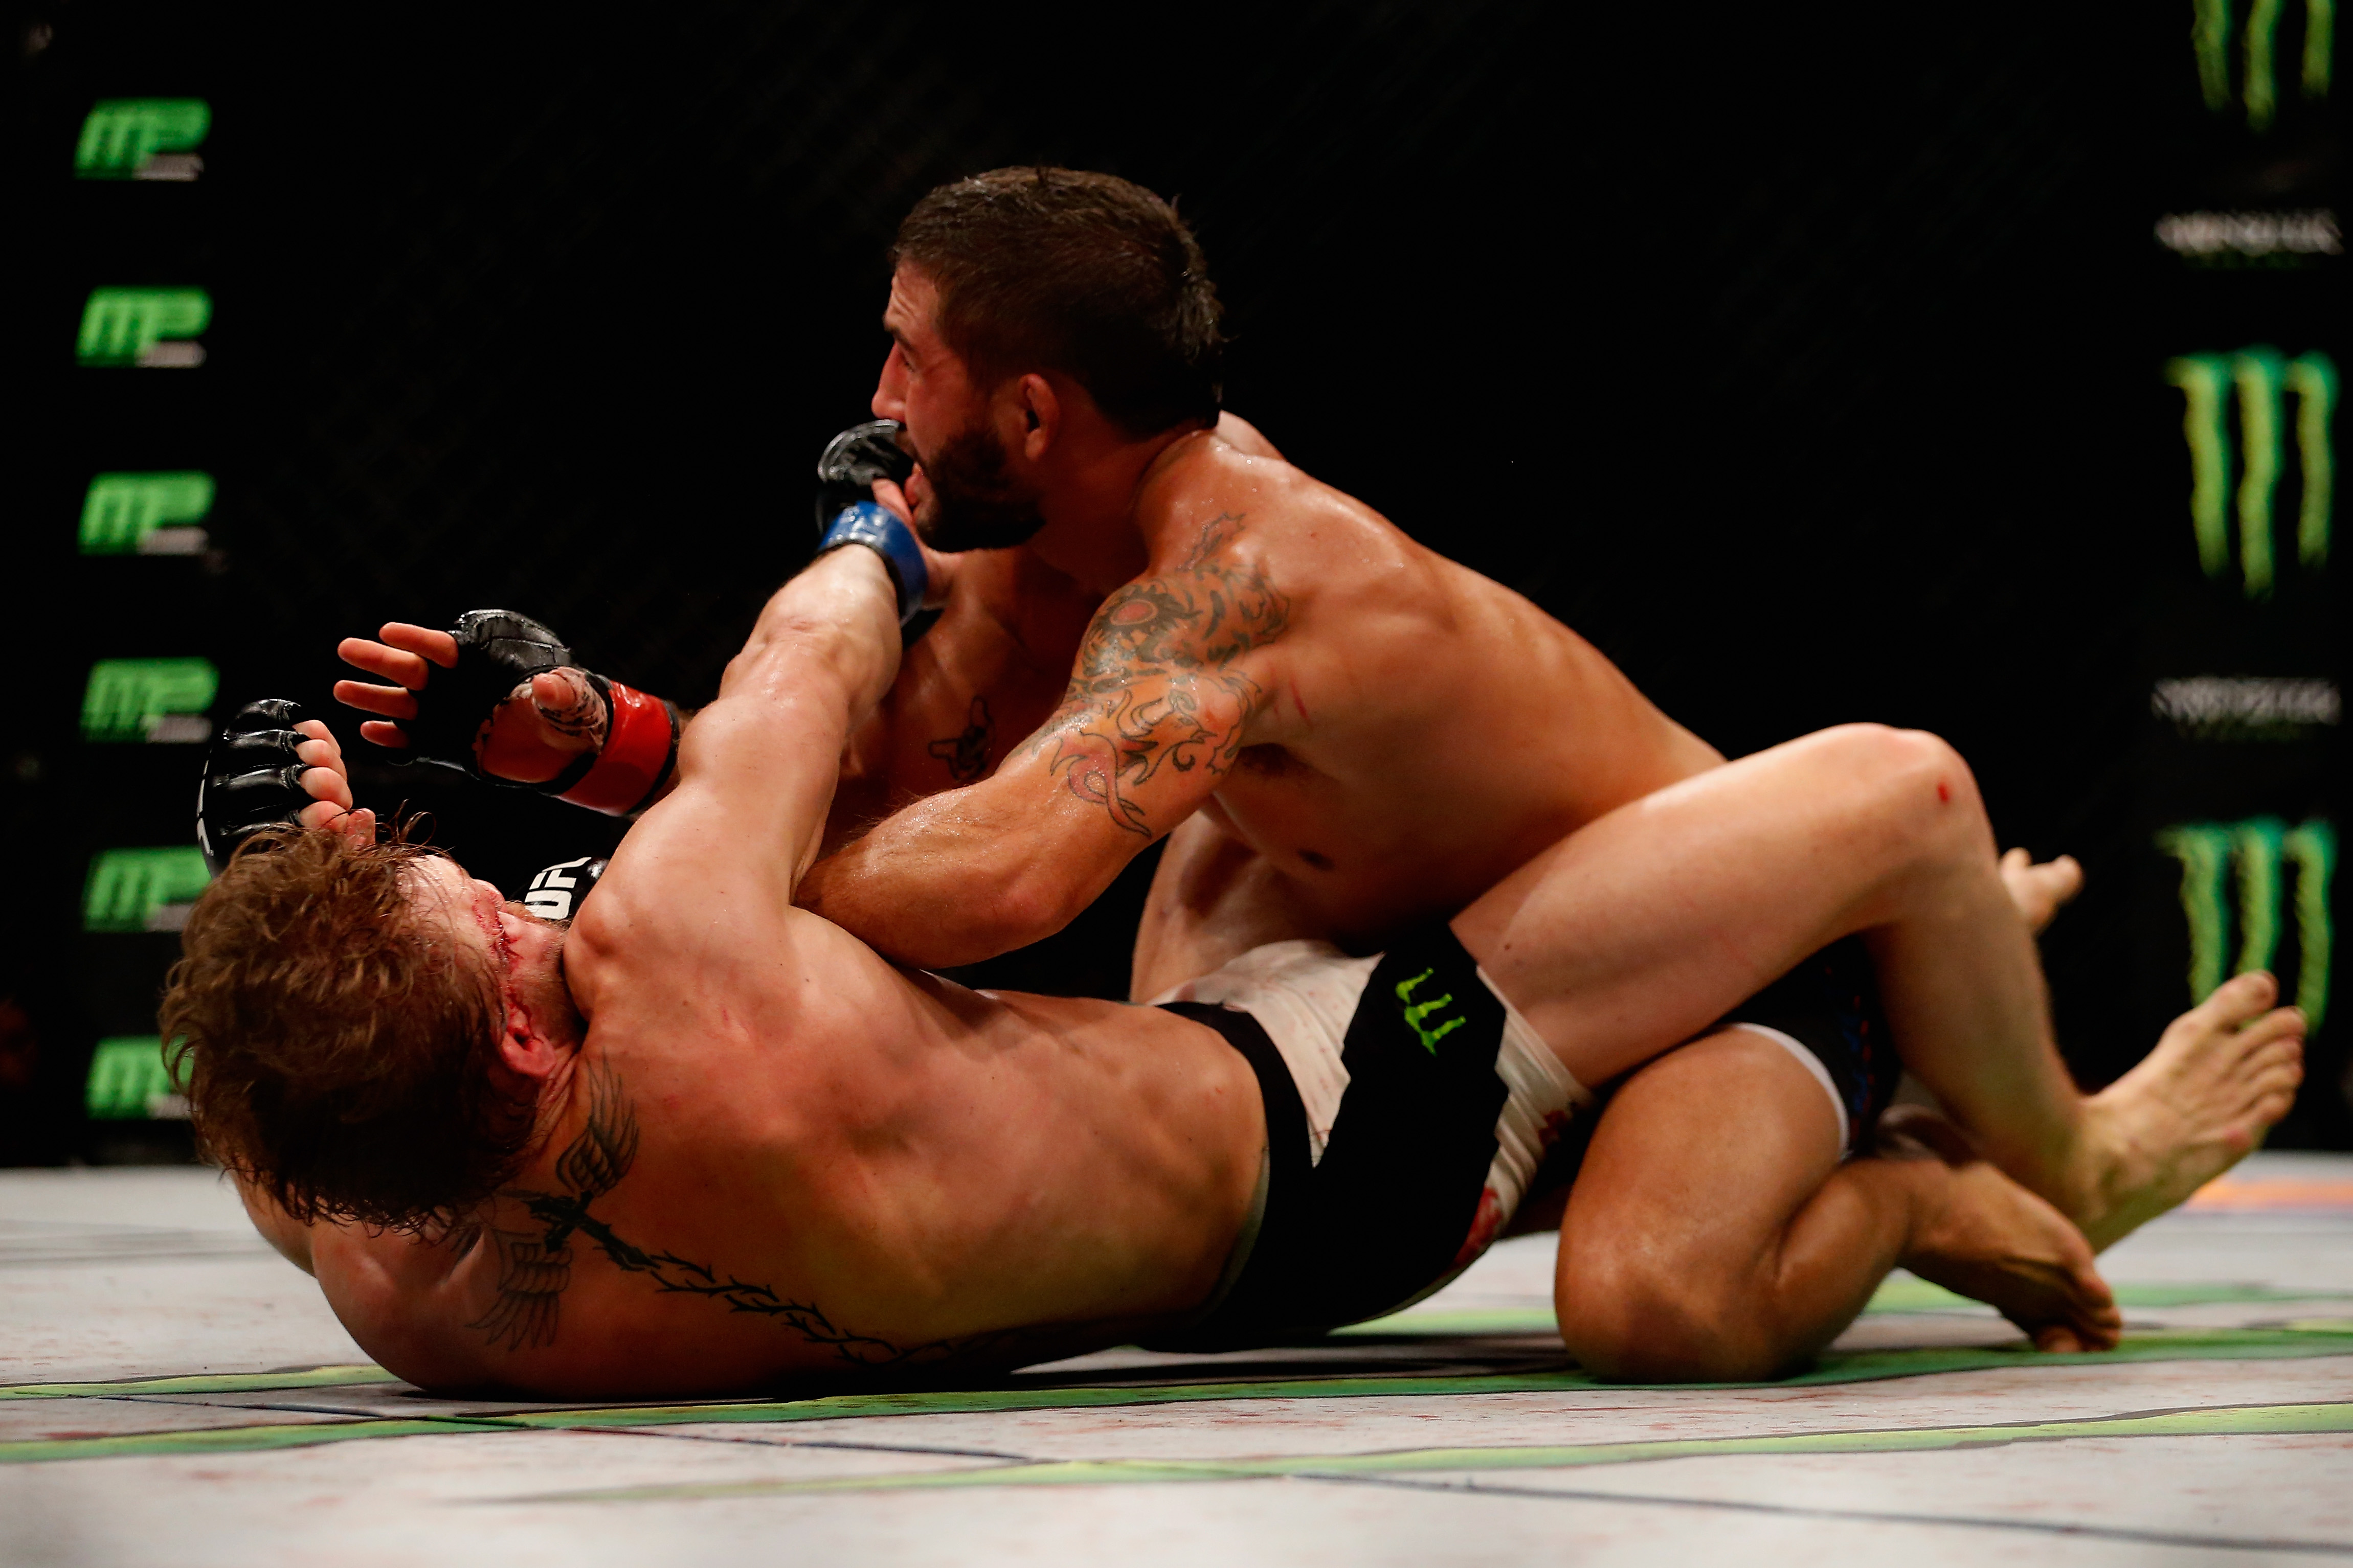 Conor McGregor punches Chad Mendes in their UFC interim featherweight title fight during the UFC 189 event inside MGM Grand Garden Arena on July 11, 2015 in Las Vegas, Nevada. (Photo by Christian Petersen/Zuffa LLC)